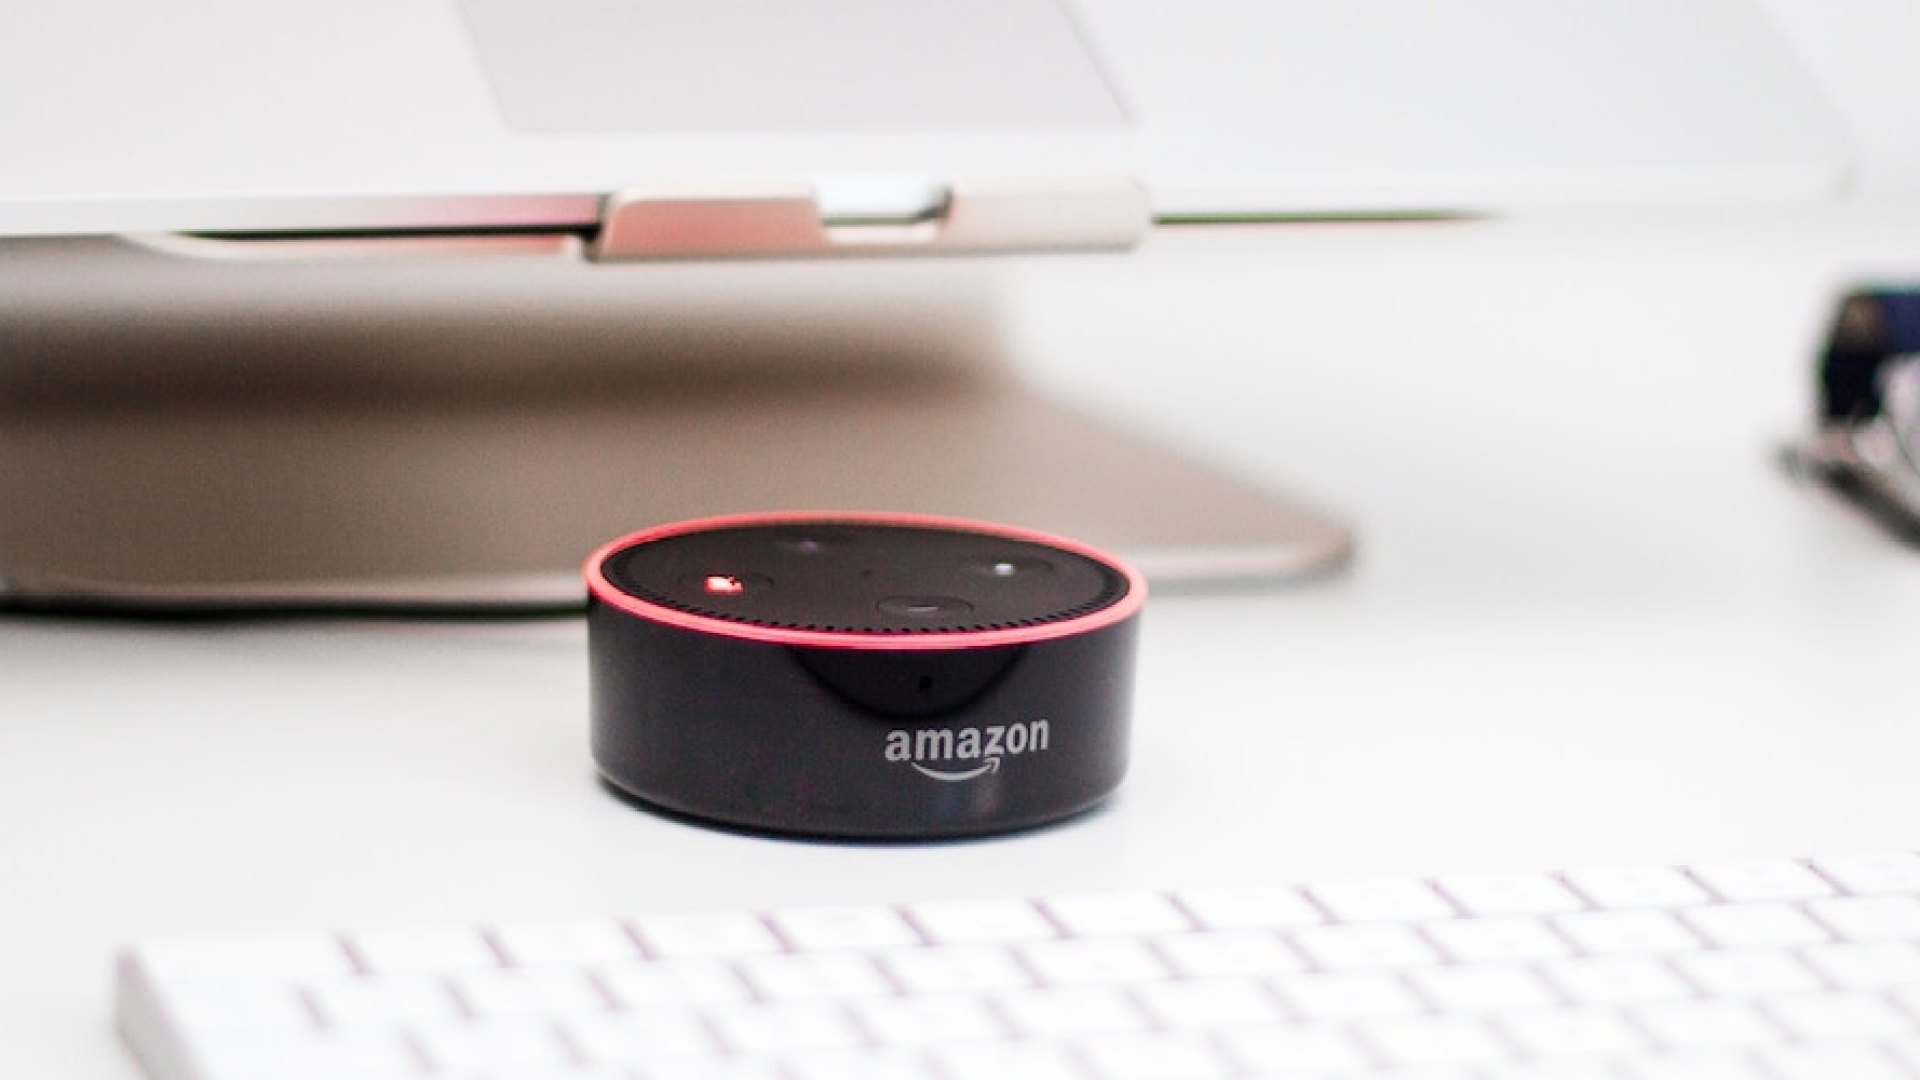 Alexa researchers' AI training technique improves speech recognition up to 15%